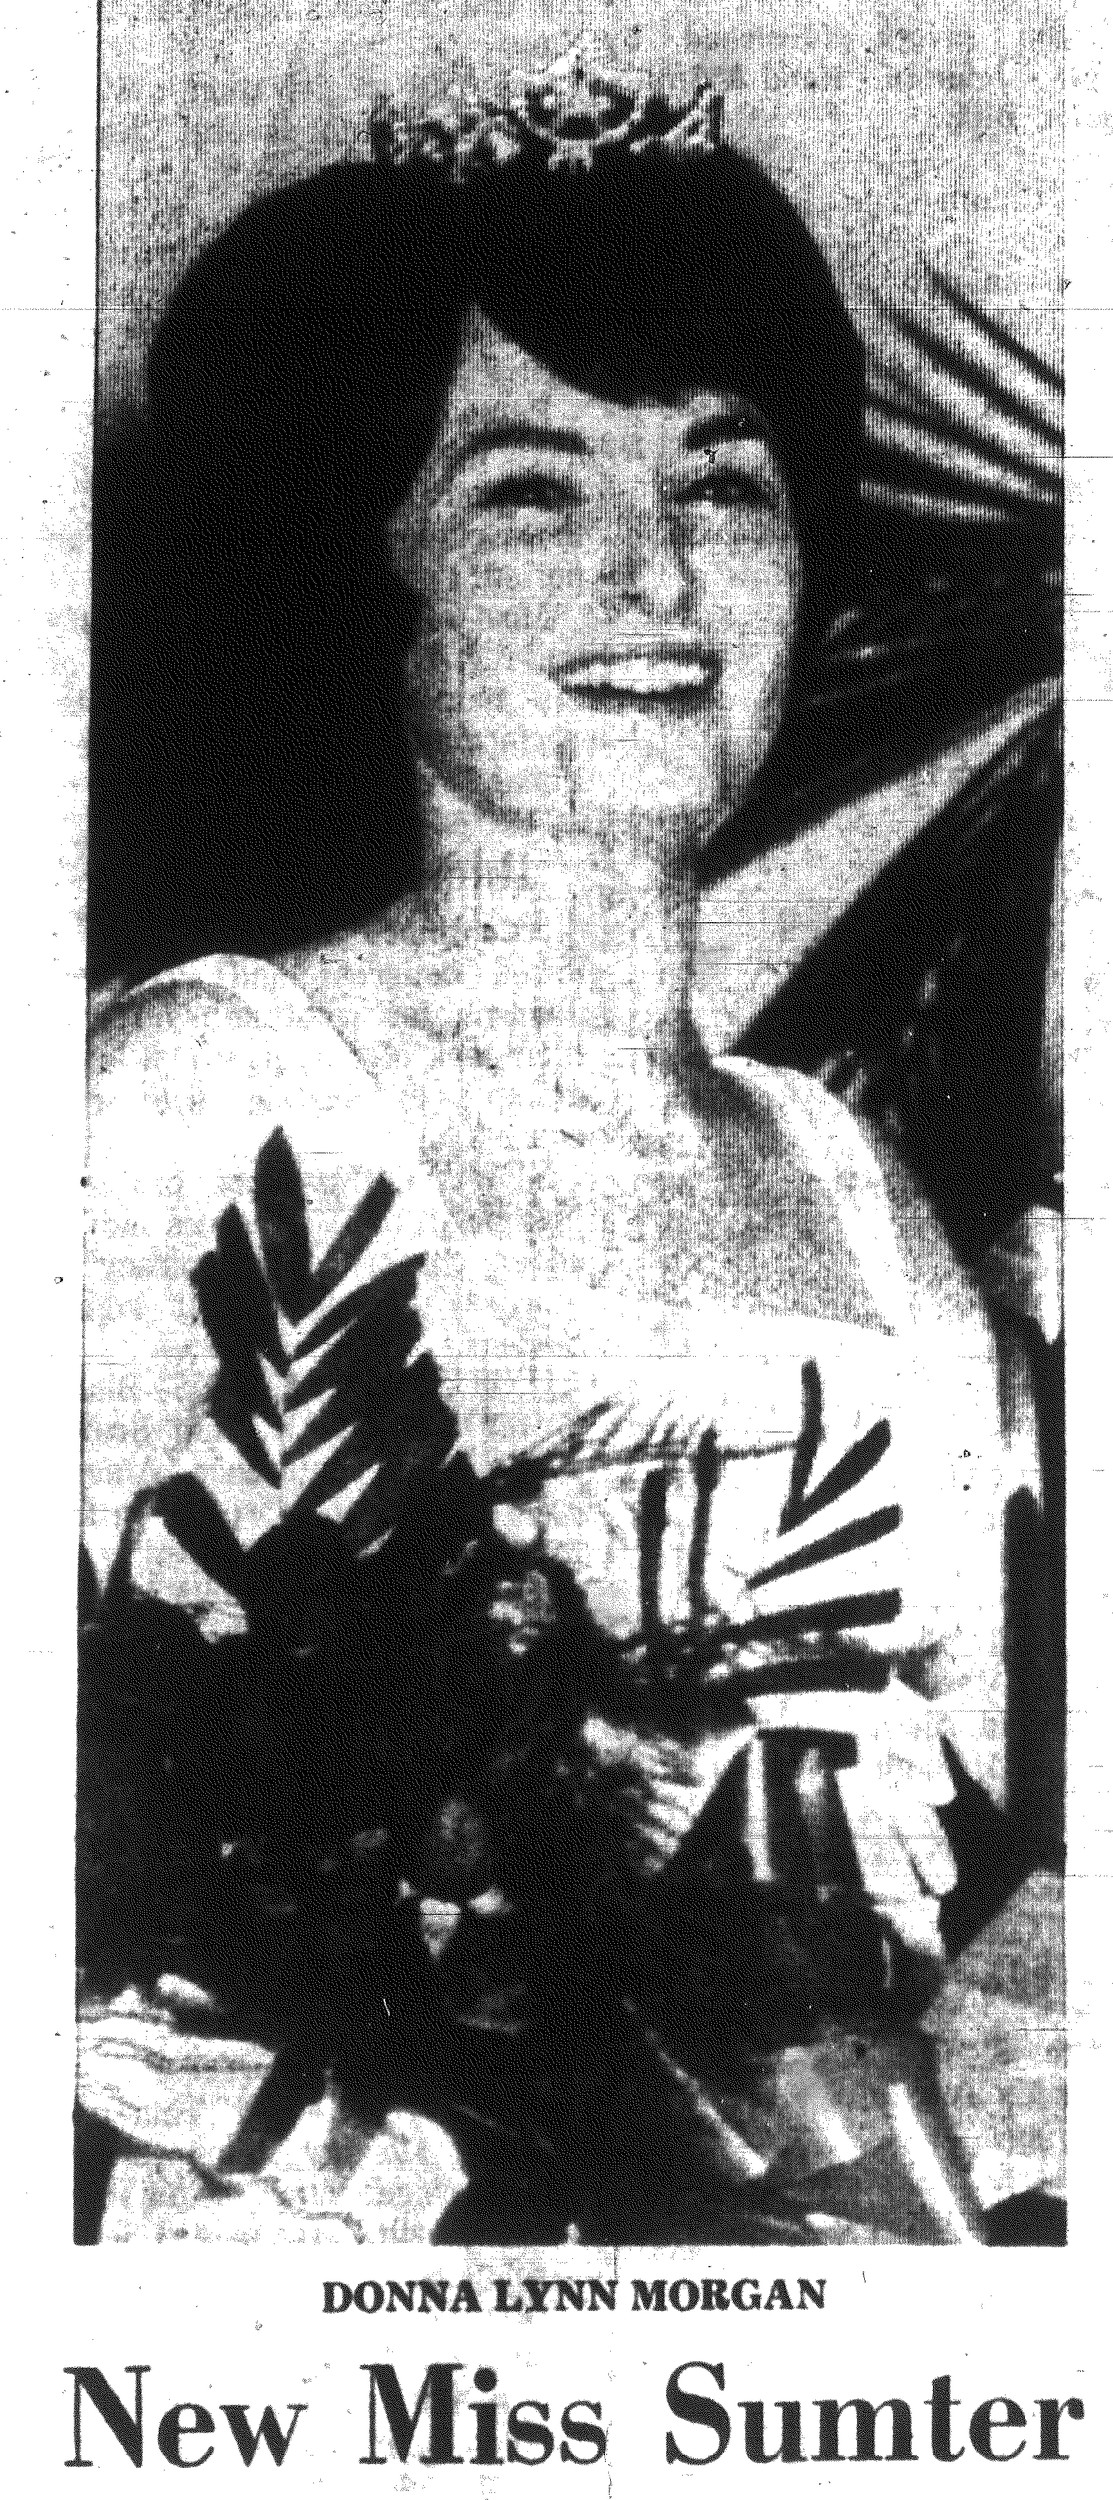 1967 -- Donna Lynn Morgan,  Miss Sumter, will represent the city in the Pageland Watermelon Festival and will ride on the City of Sumter float in the festival's parade.